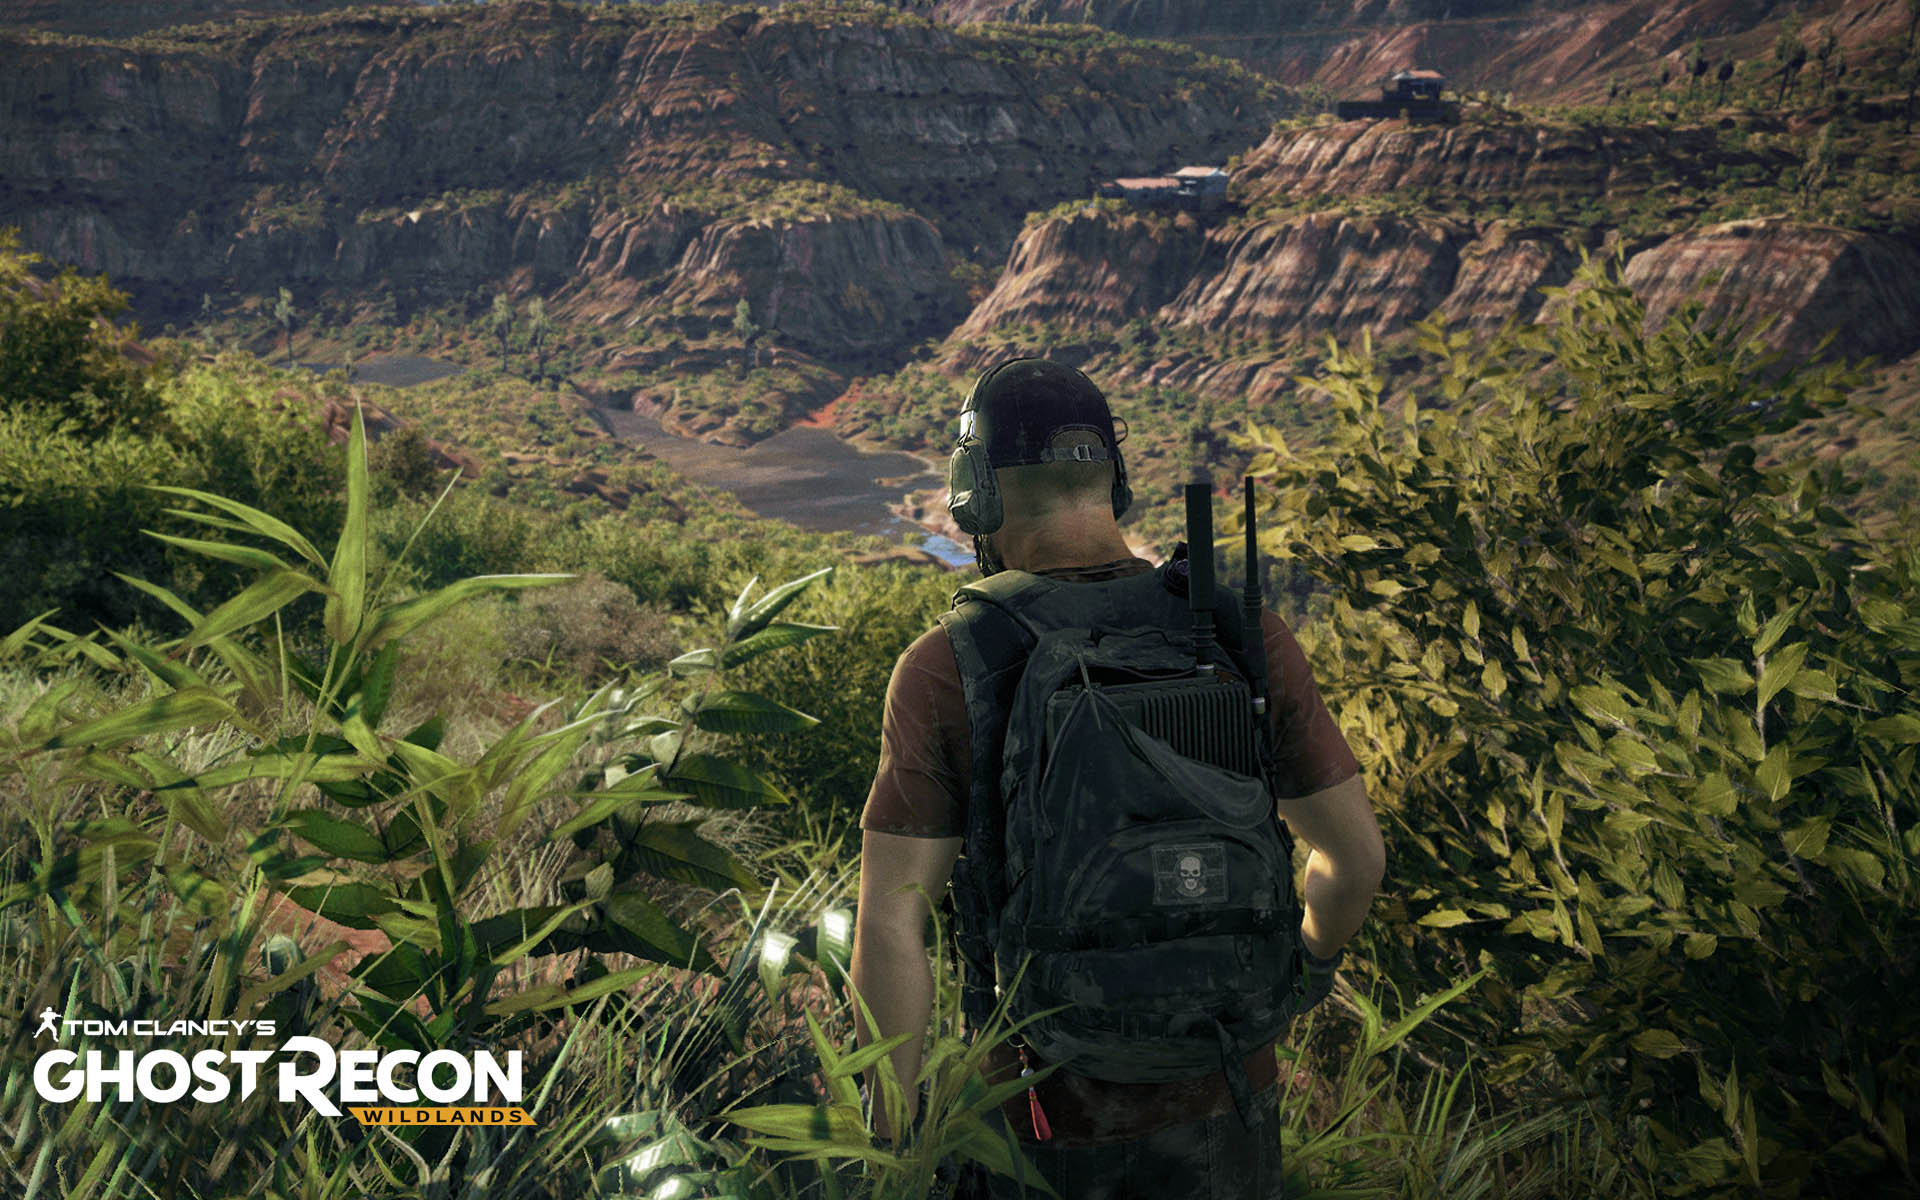 Ghost Recon Wildlands Wallpaper 1920x1080 Posted By Michelle Peltier